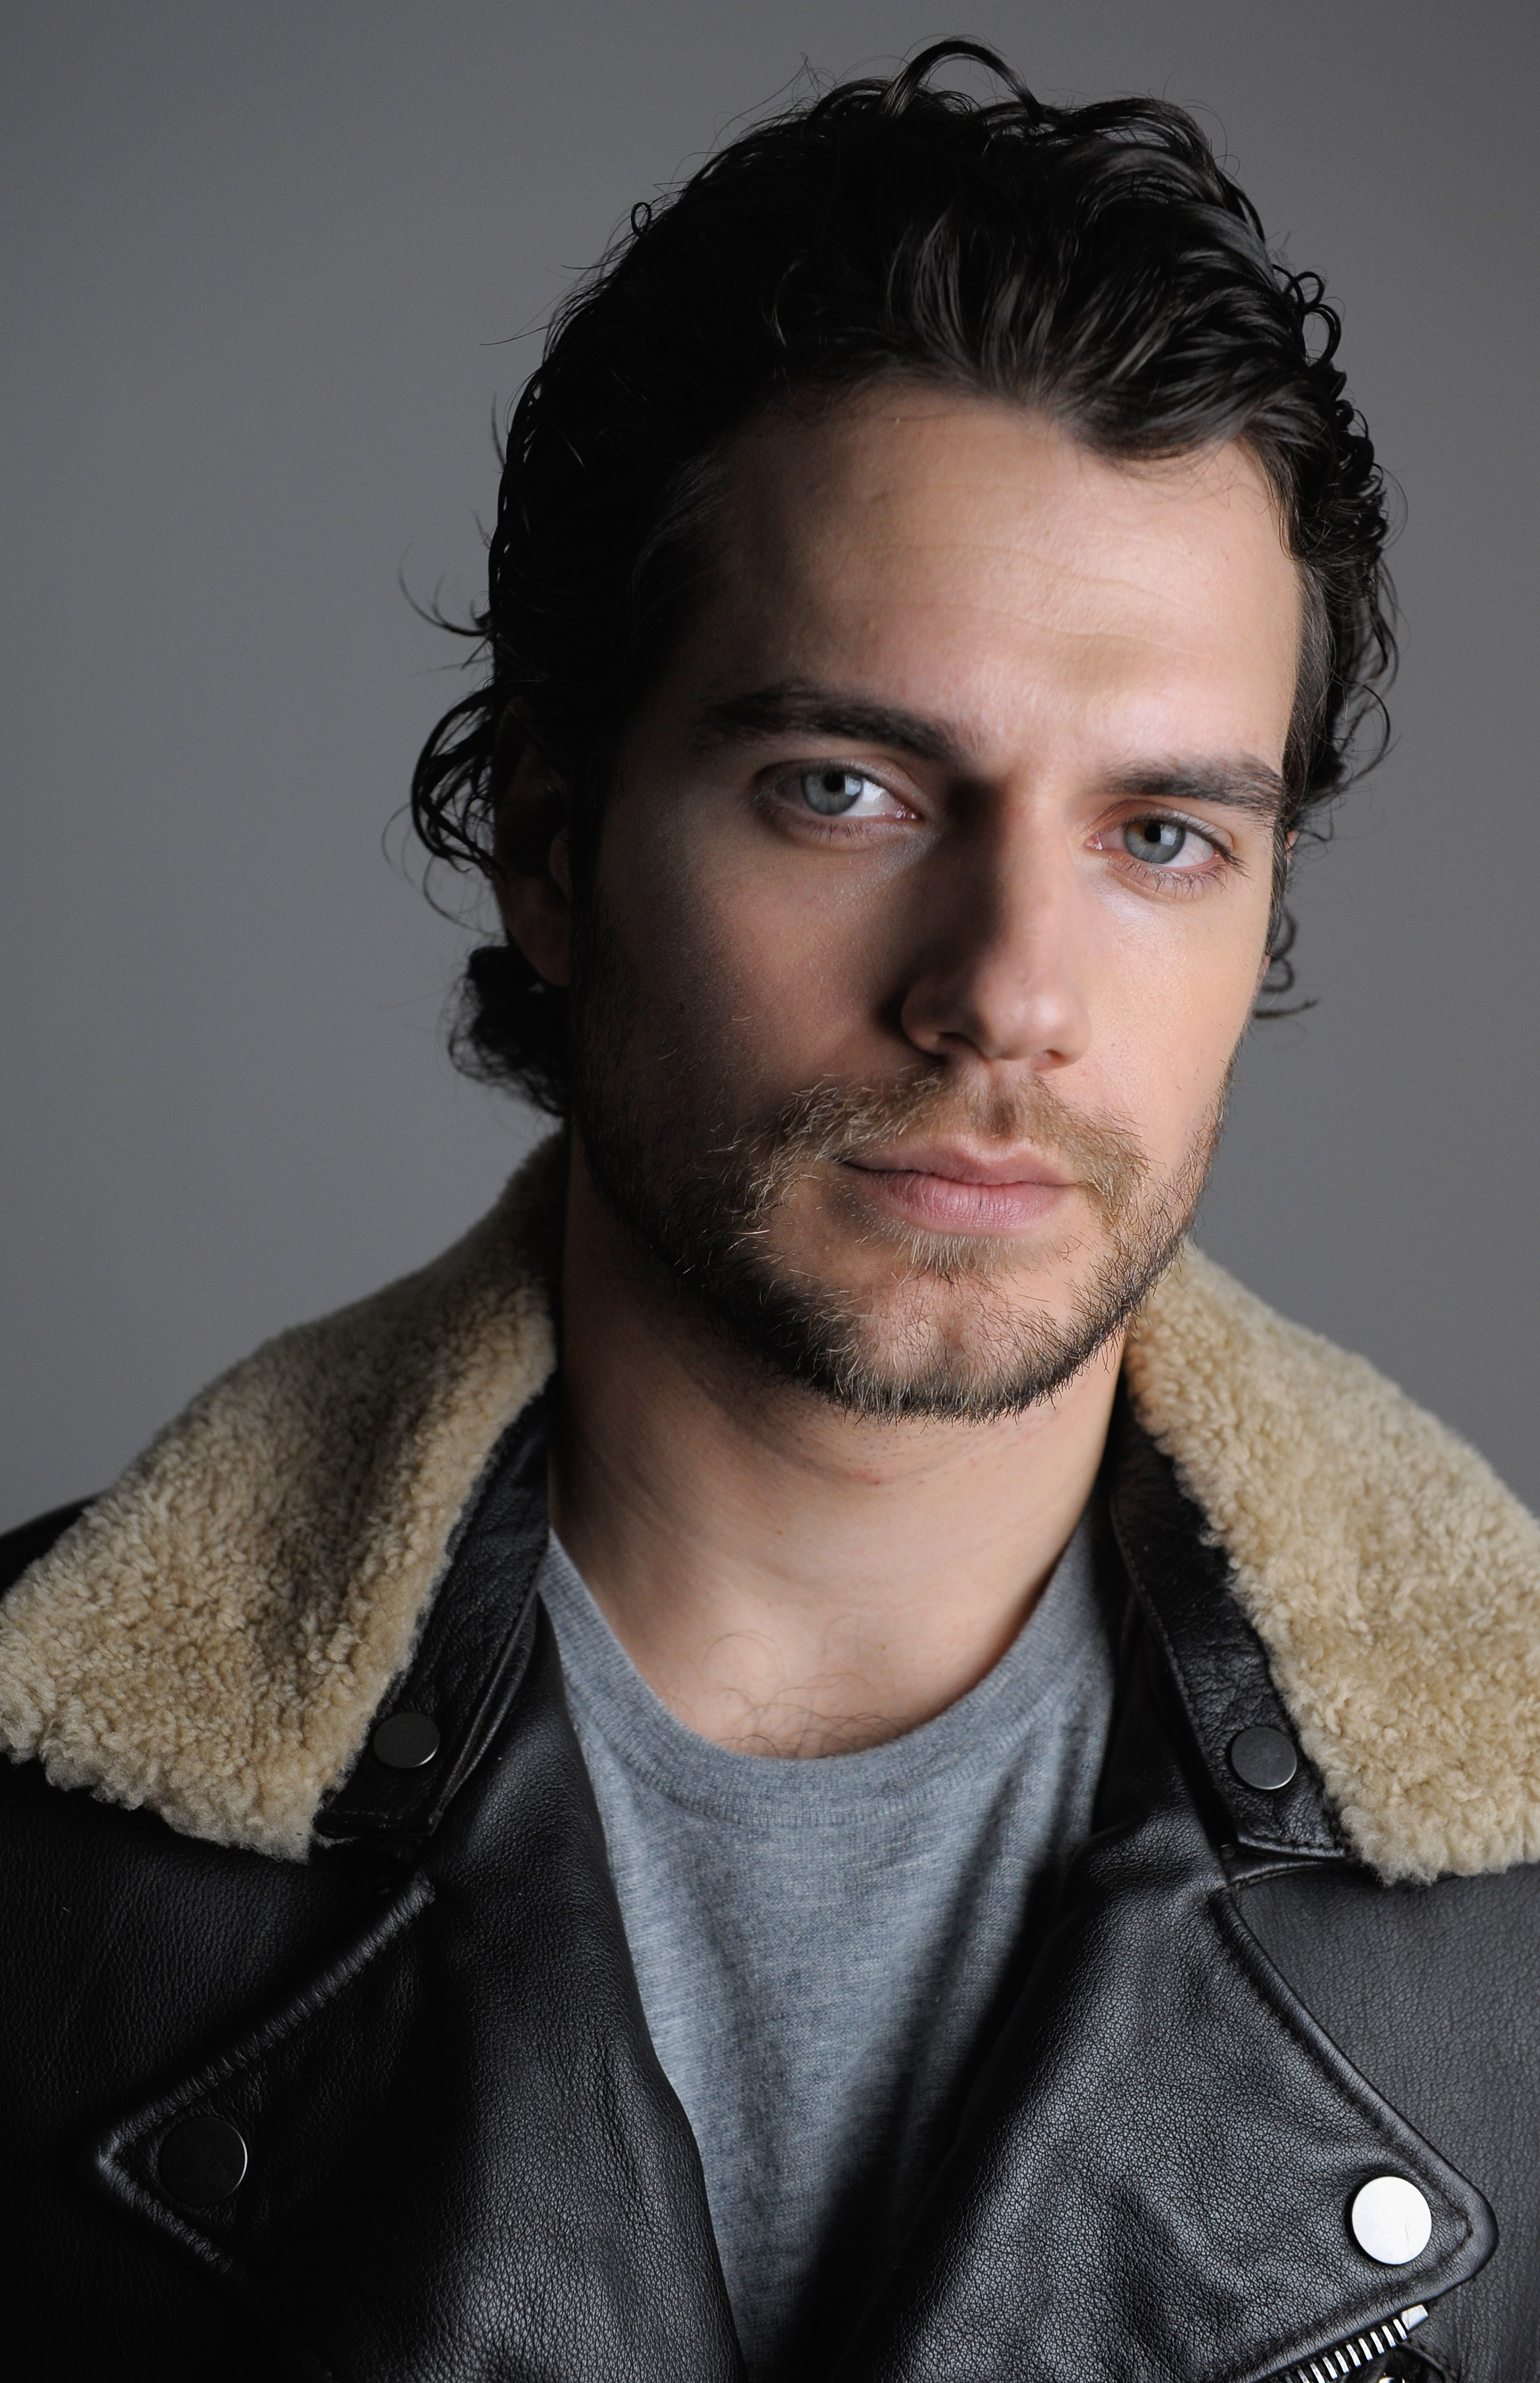 Henry Cavill Backgrounds, Compatible - PC, Mobile, Gadgets| 2705x4186 px